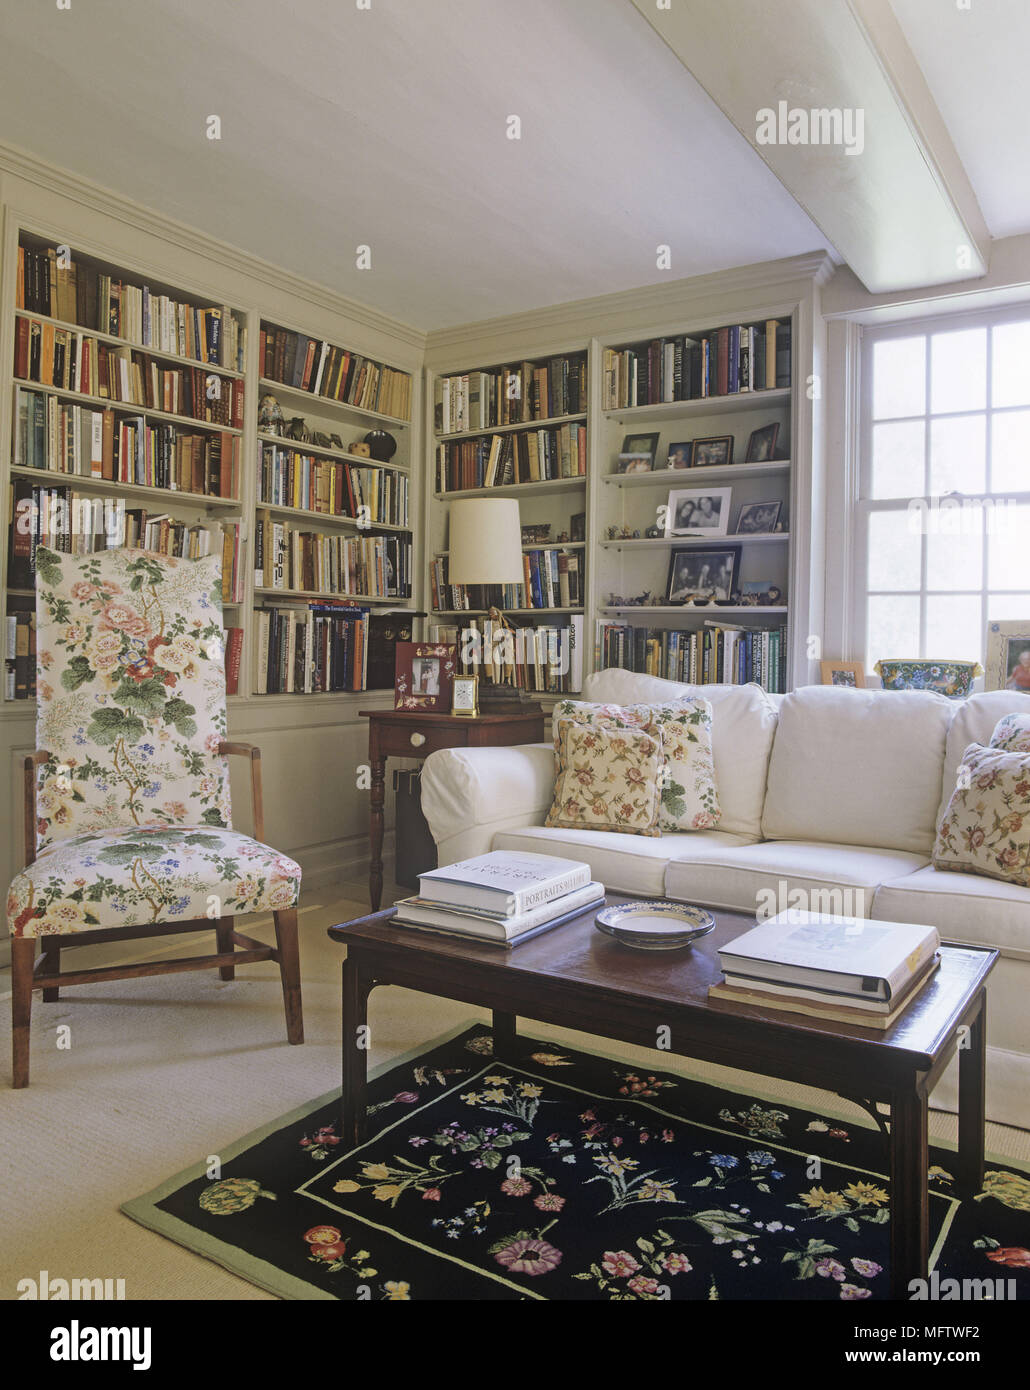 A Traditional Sitting Room With A Corner Bookshelf And A Small Coffee Table  With Seating Upholstered With A Floral Pattern.